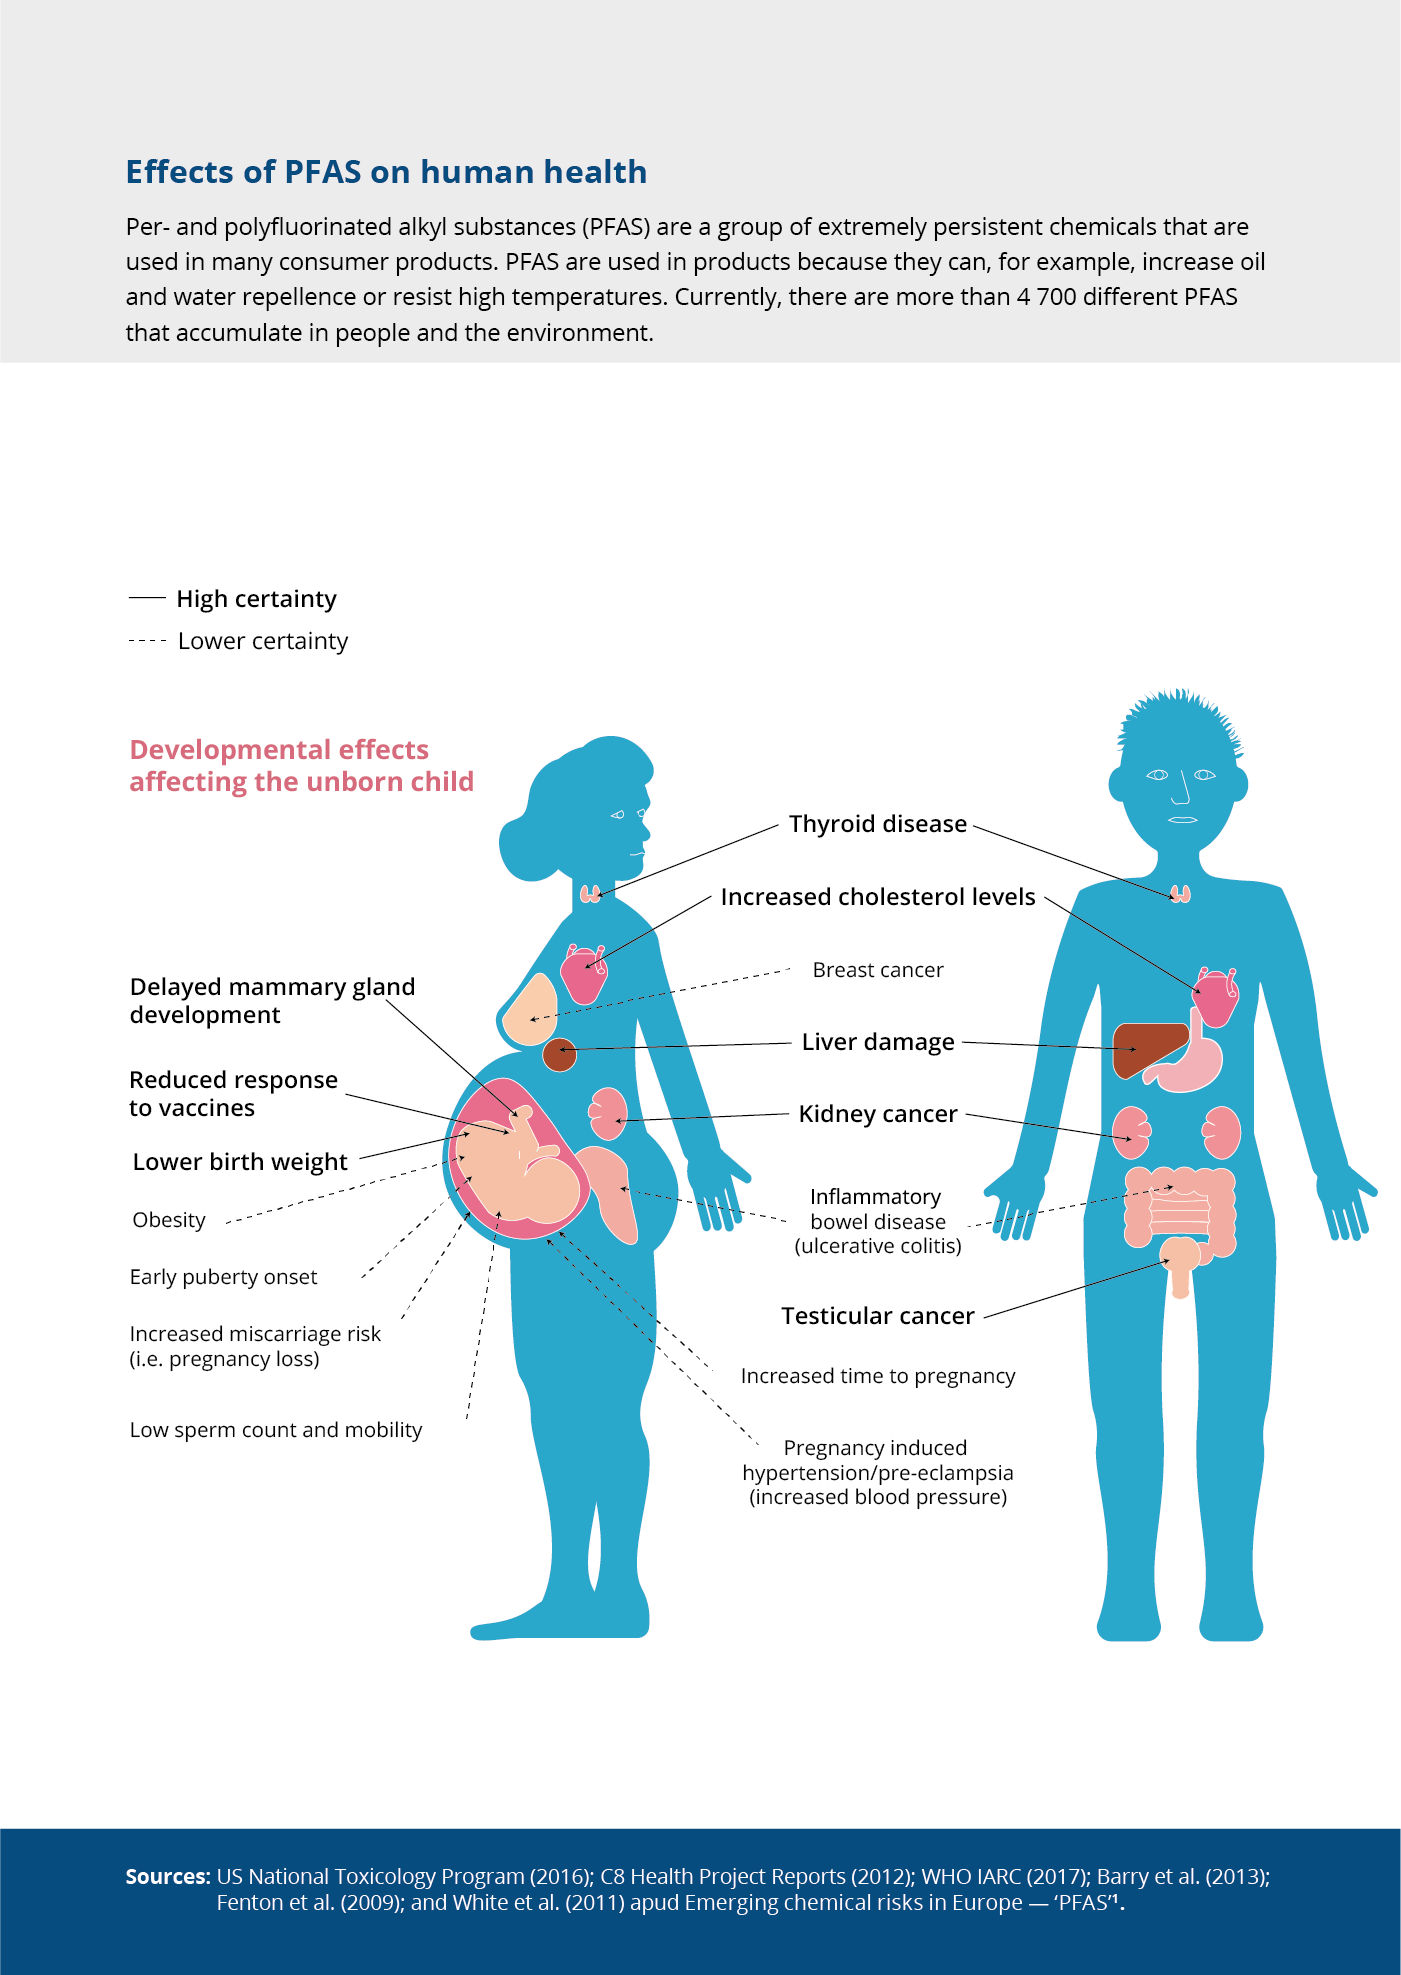 Effects of PFAS on human health